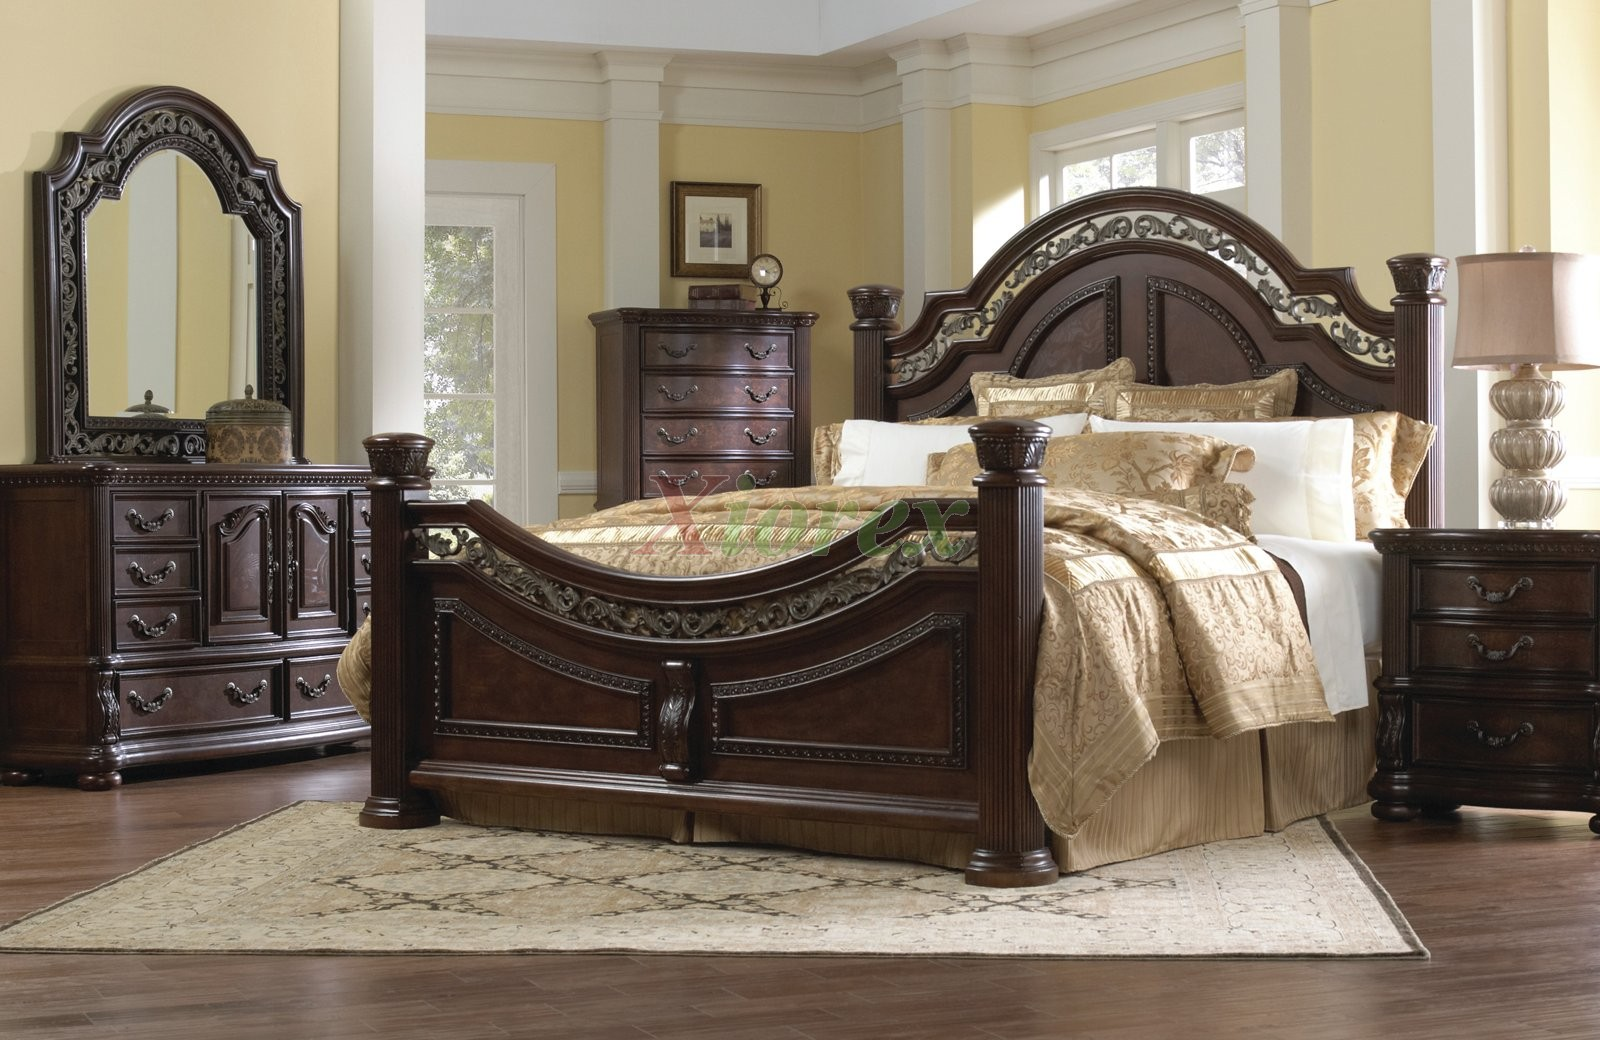 Bed And Furniture Sets Home Decorating Ideas House Designer